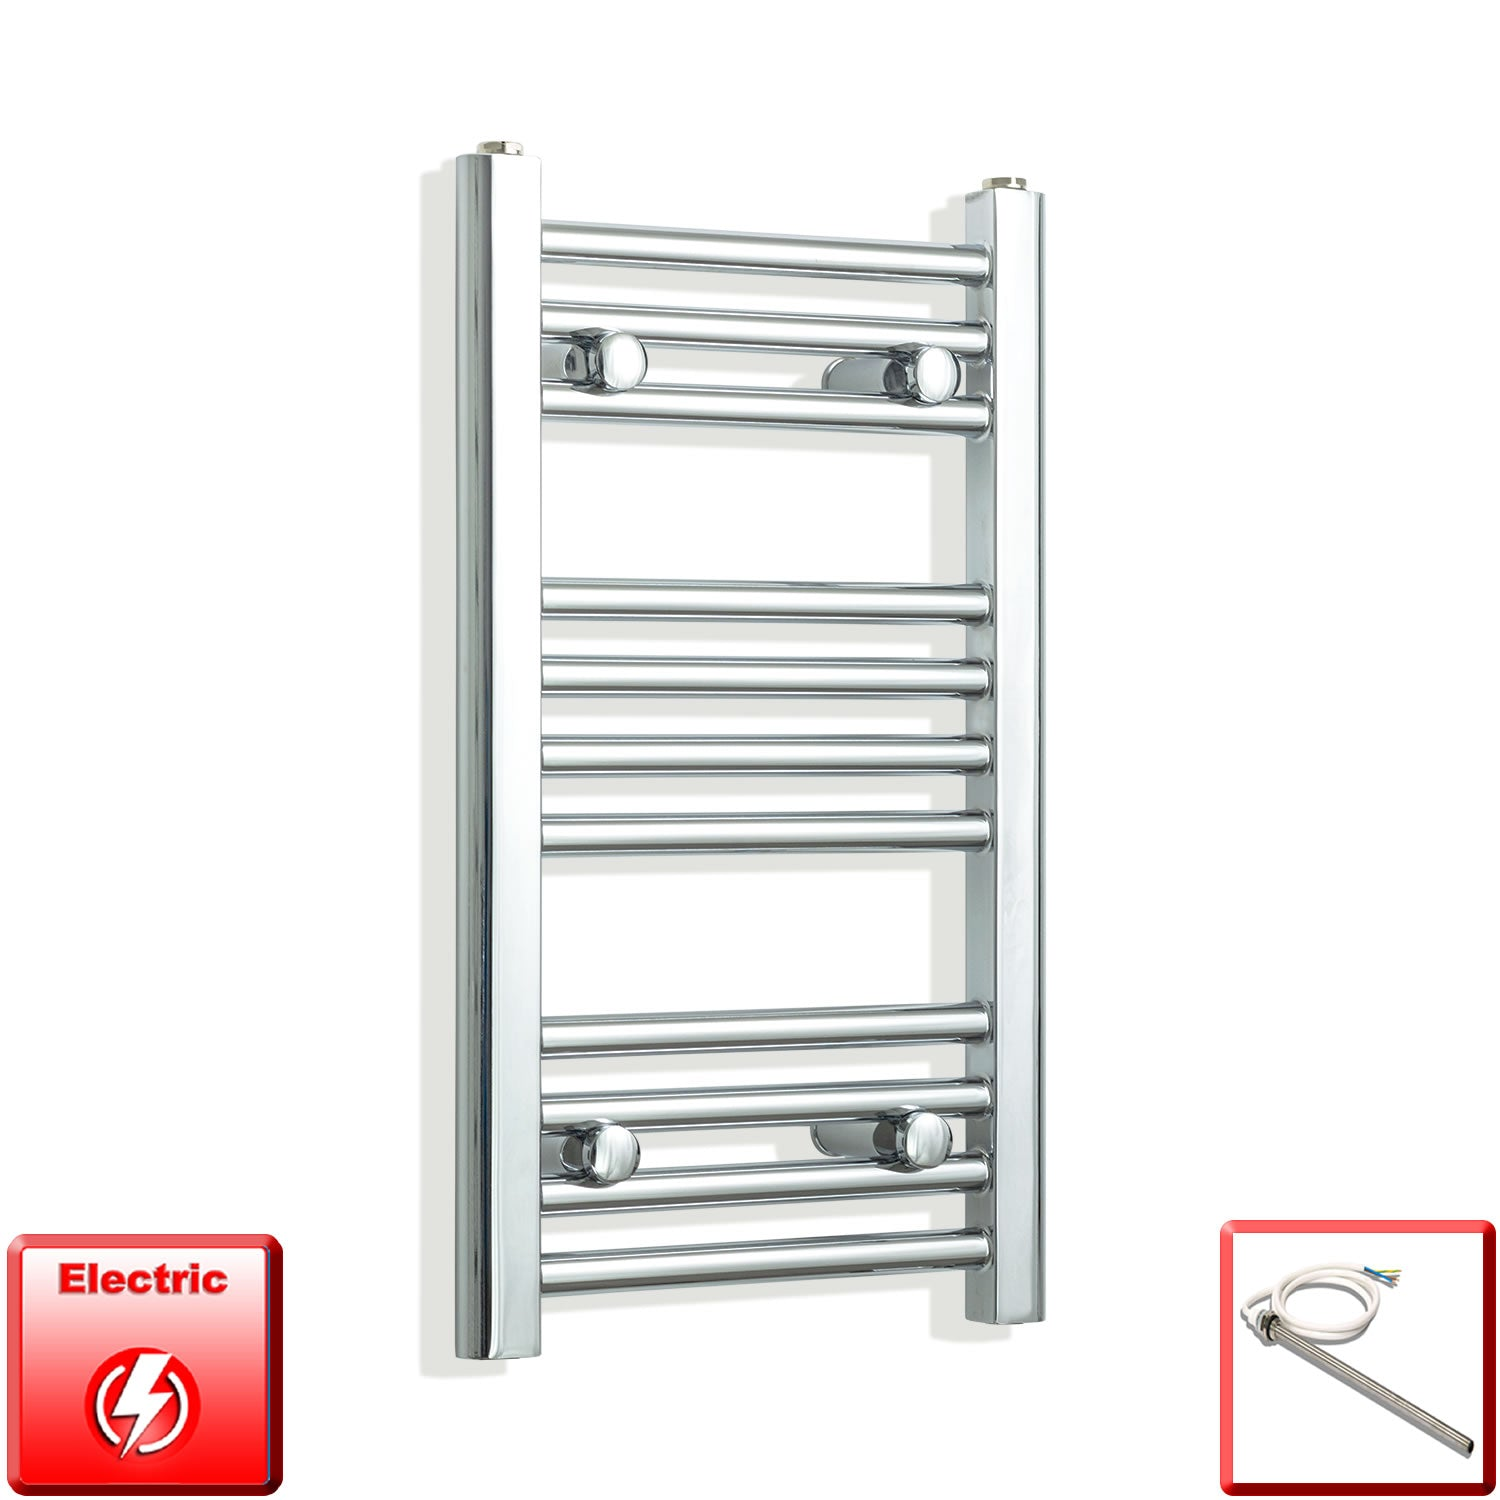 300mm Wide 600mm High Pre-Filled Chrome Electric Towel Rail Radiator With Single Heat Element